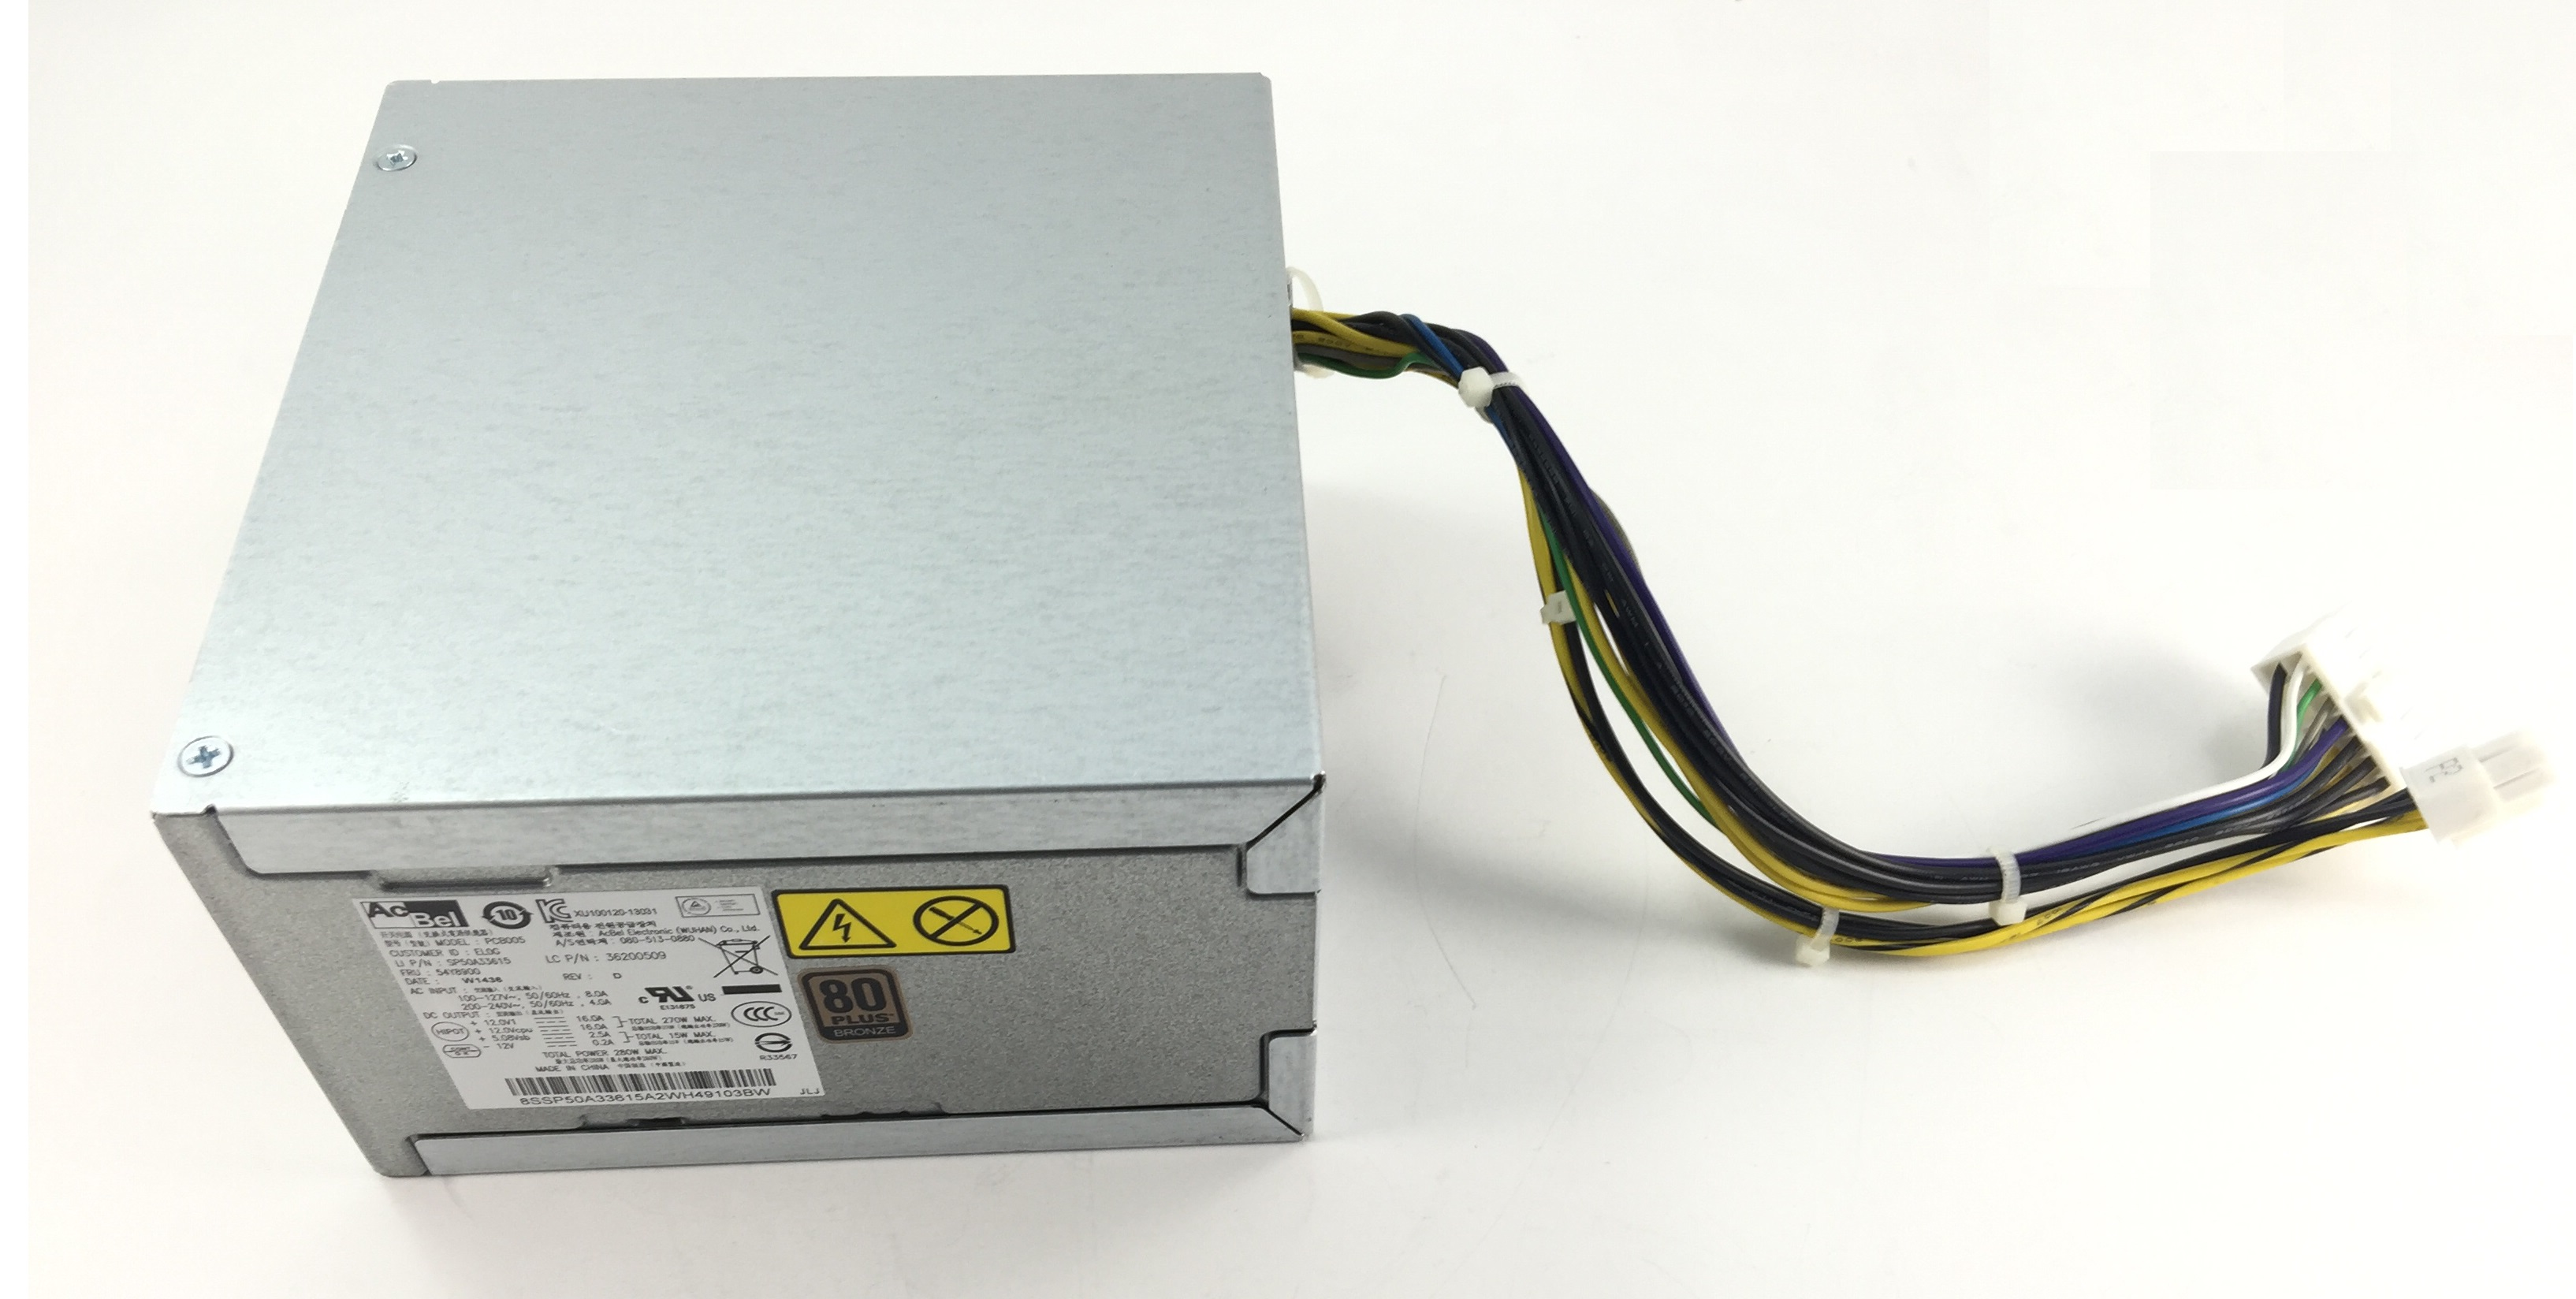 LENOVO THINKSERVER TS140 280W POWER SUPPLY (54Y8900)